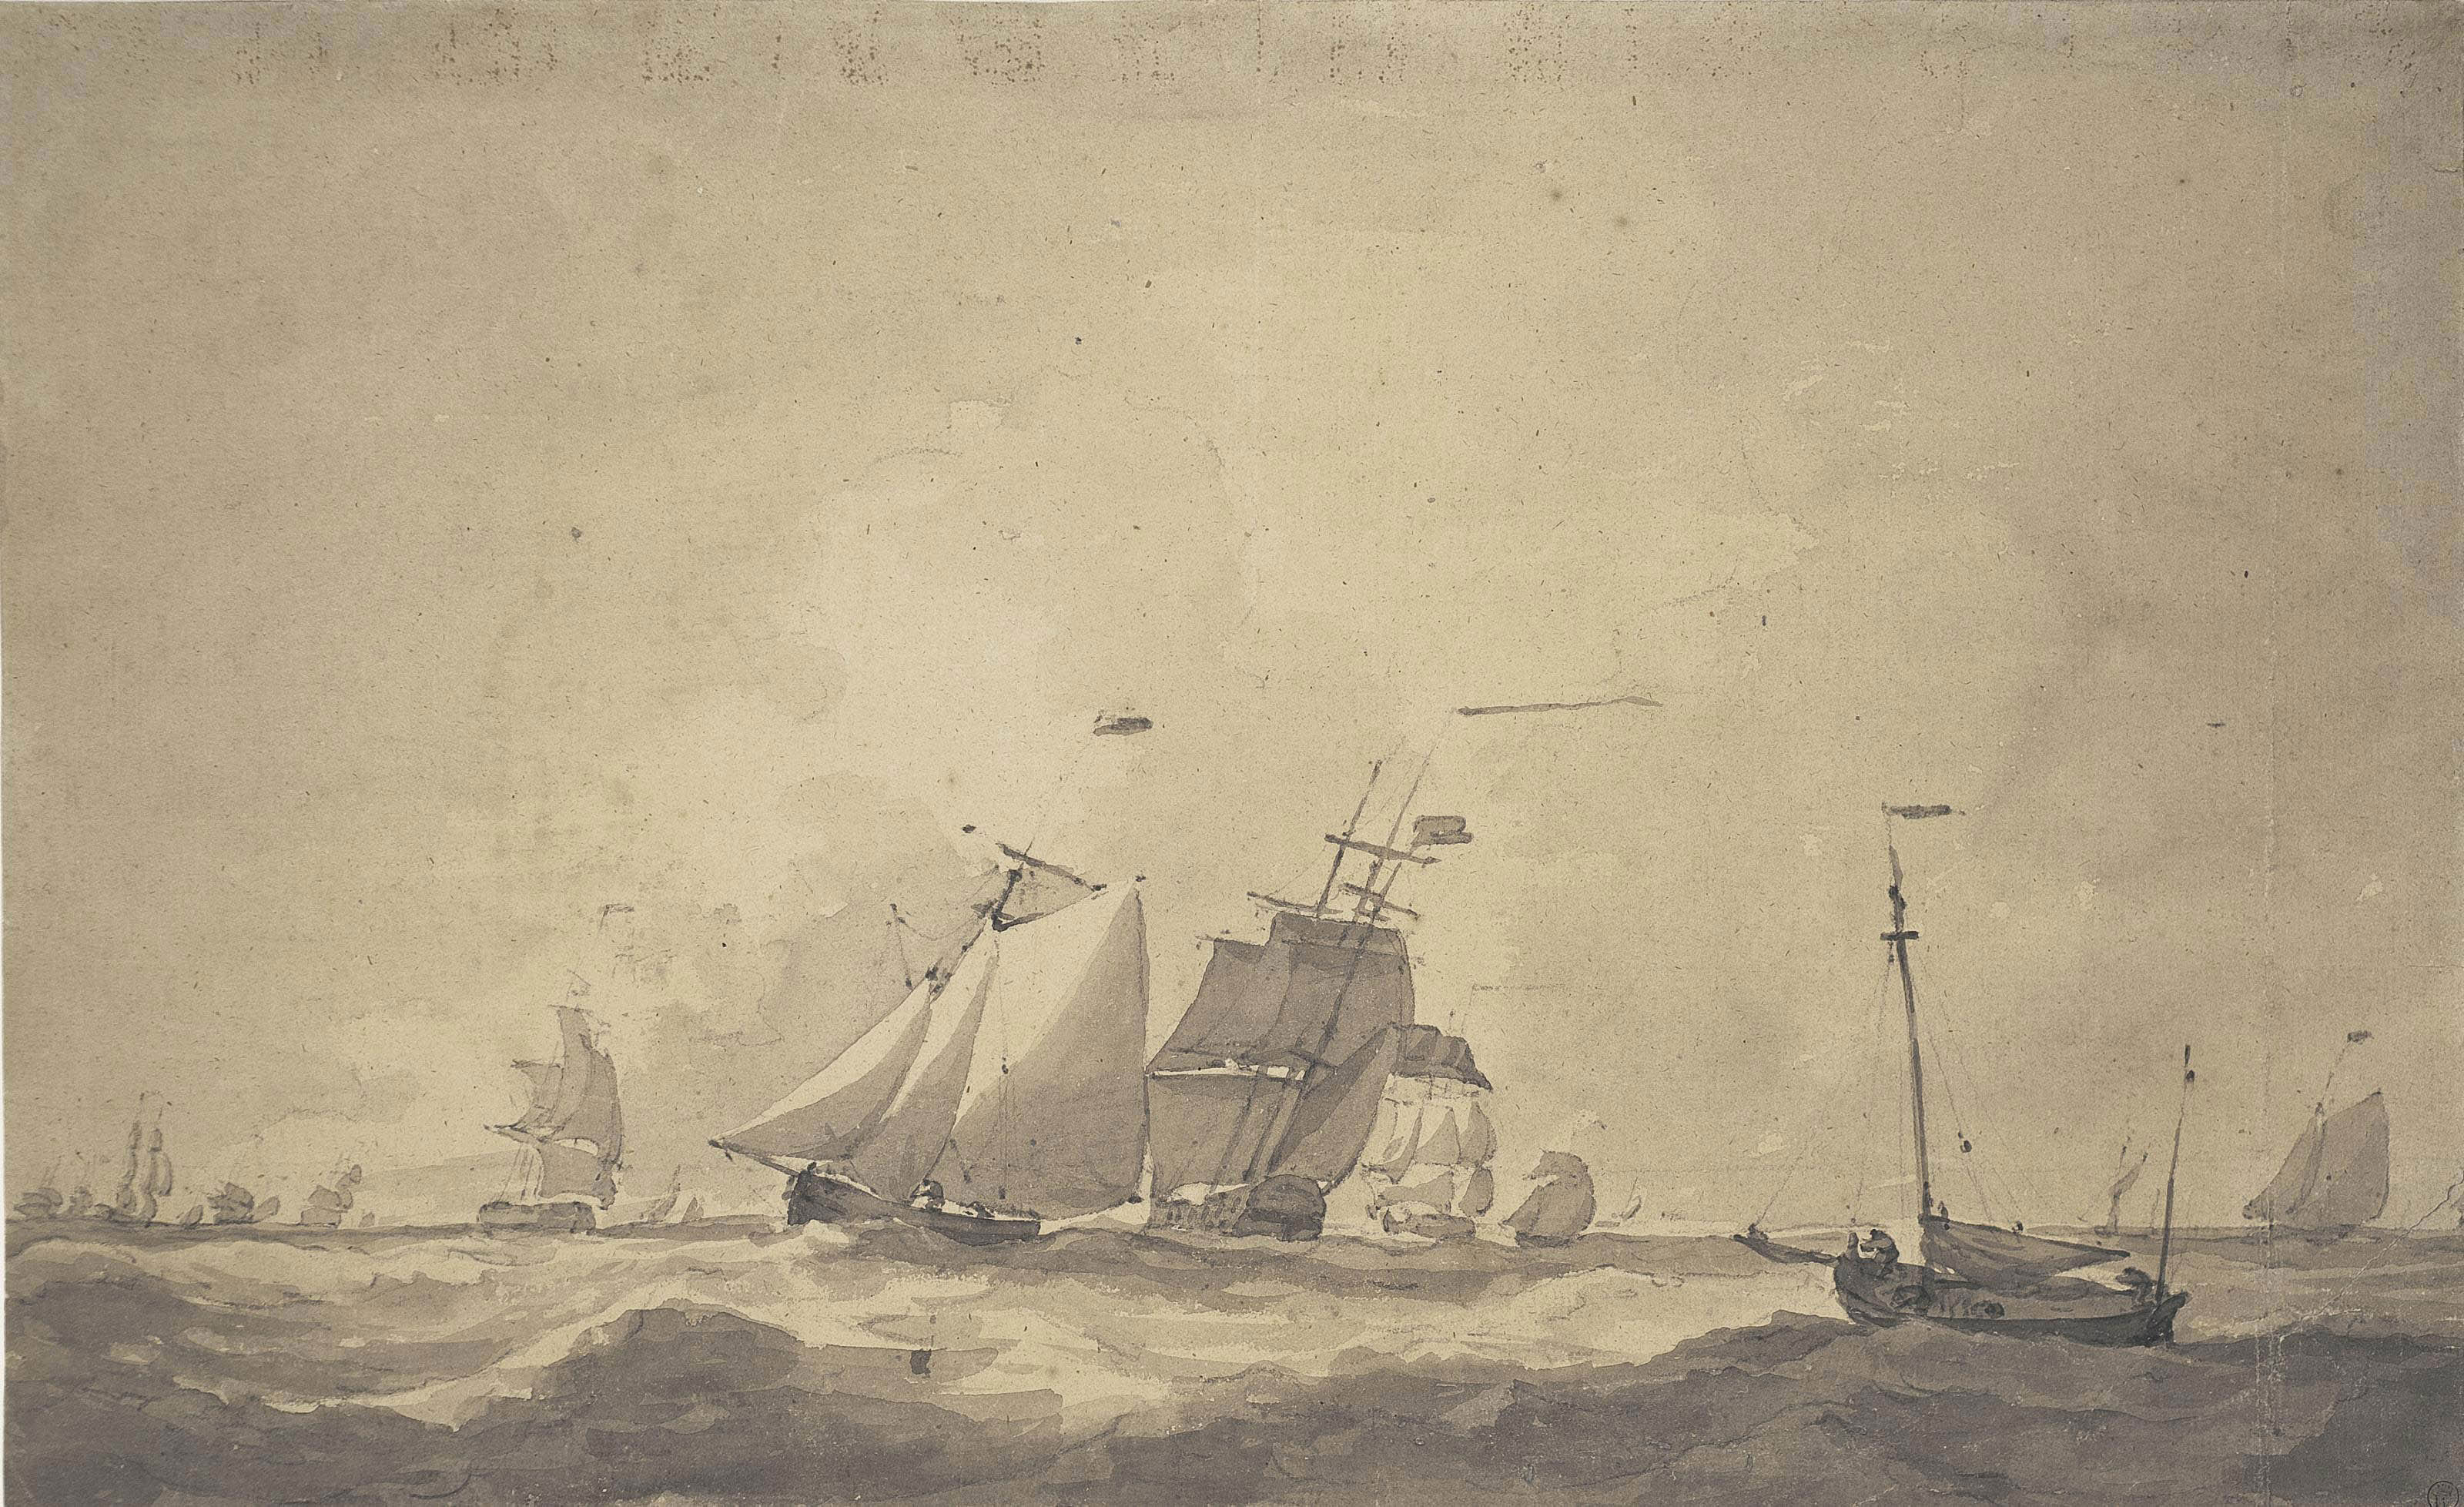 A fleet on the open sea in high winds